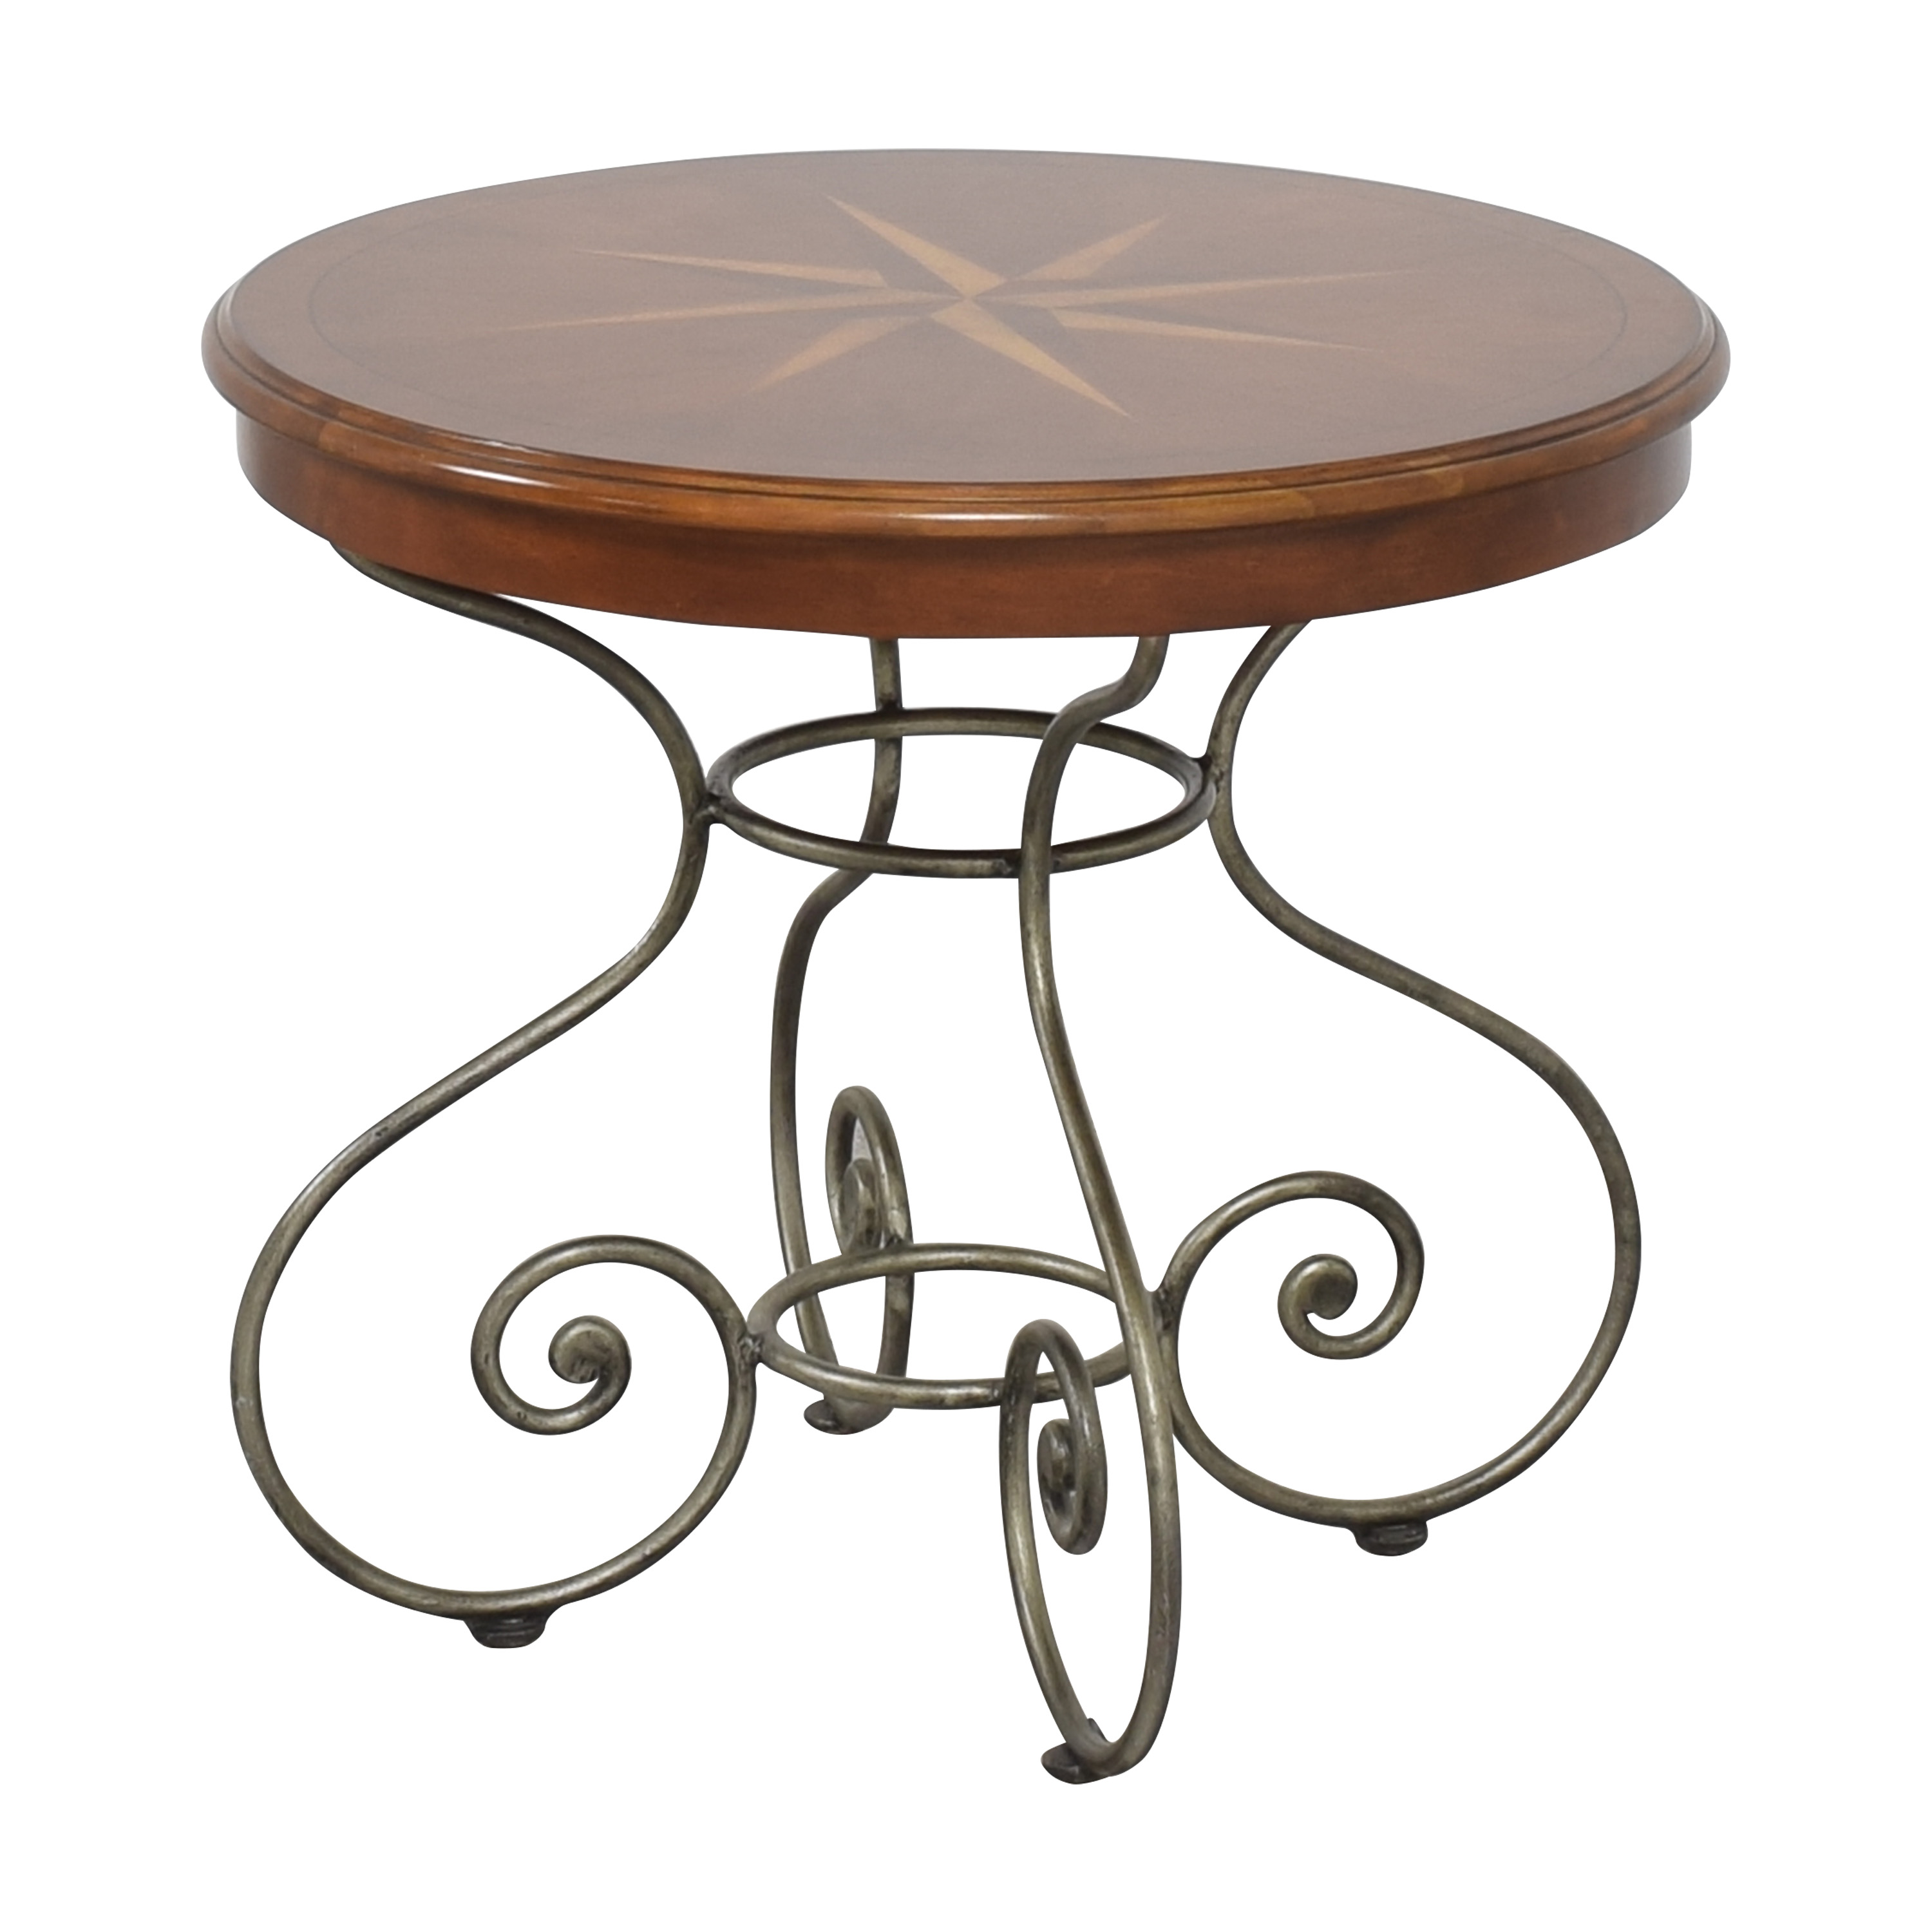 Ethan Allen Ornate Round End Table Ethan Allen